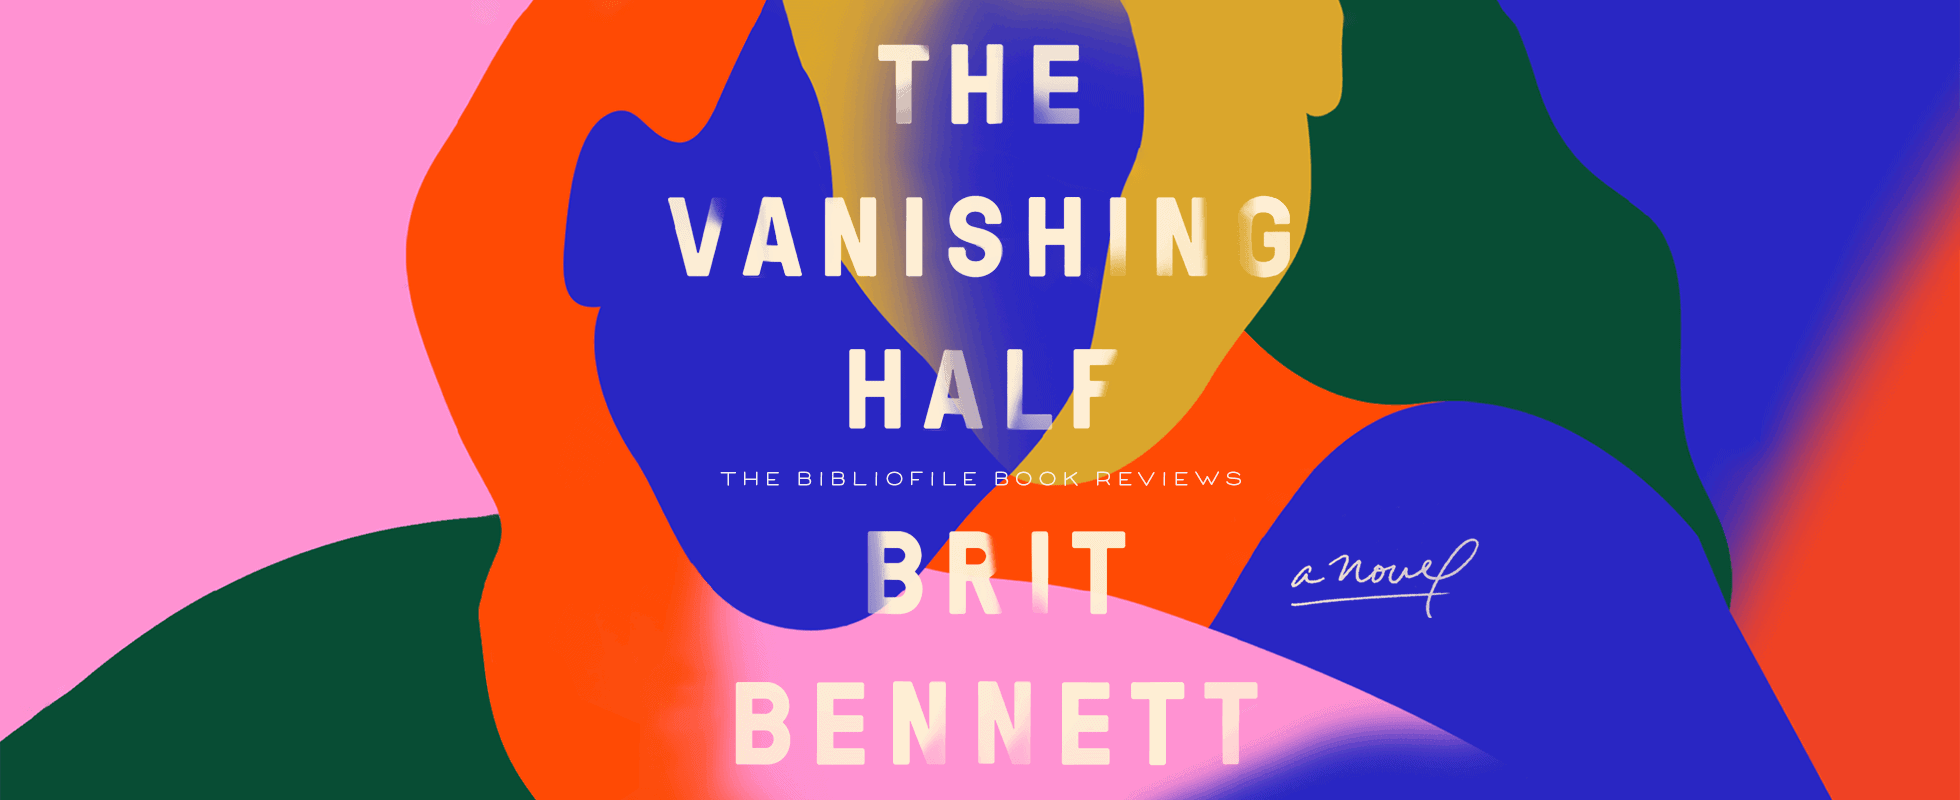 the vanishing half by brit bennett summary book review plot synopsis